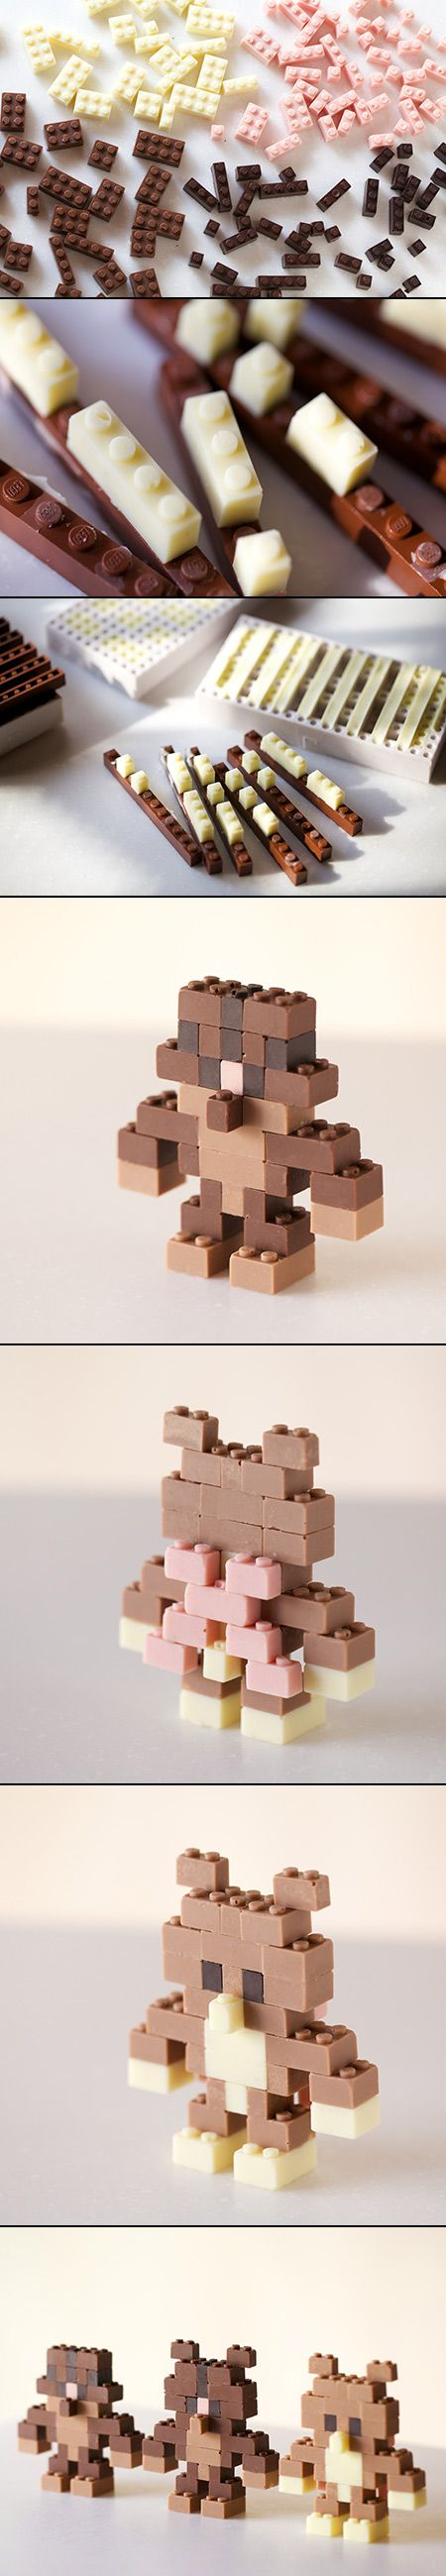 Illustrator and designer Akihiro Mizuuchi designed a modular system for creating edible chocolate LEGO bricks. Chocolate is first poured into precisely designed moulds that after cooling can be popped out and used as regular LEGOs.